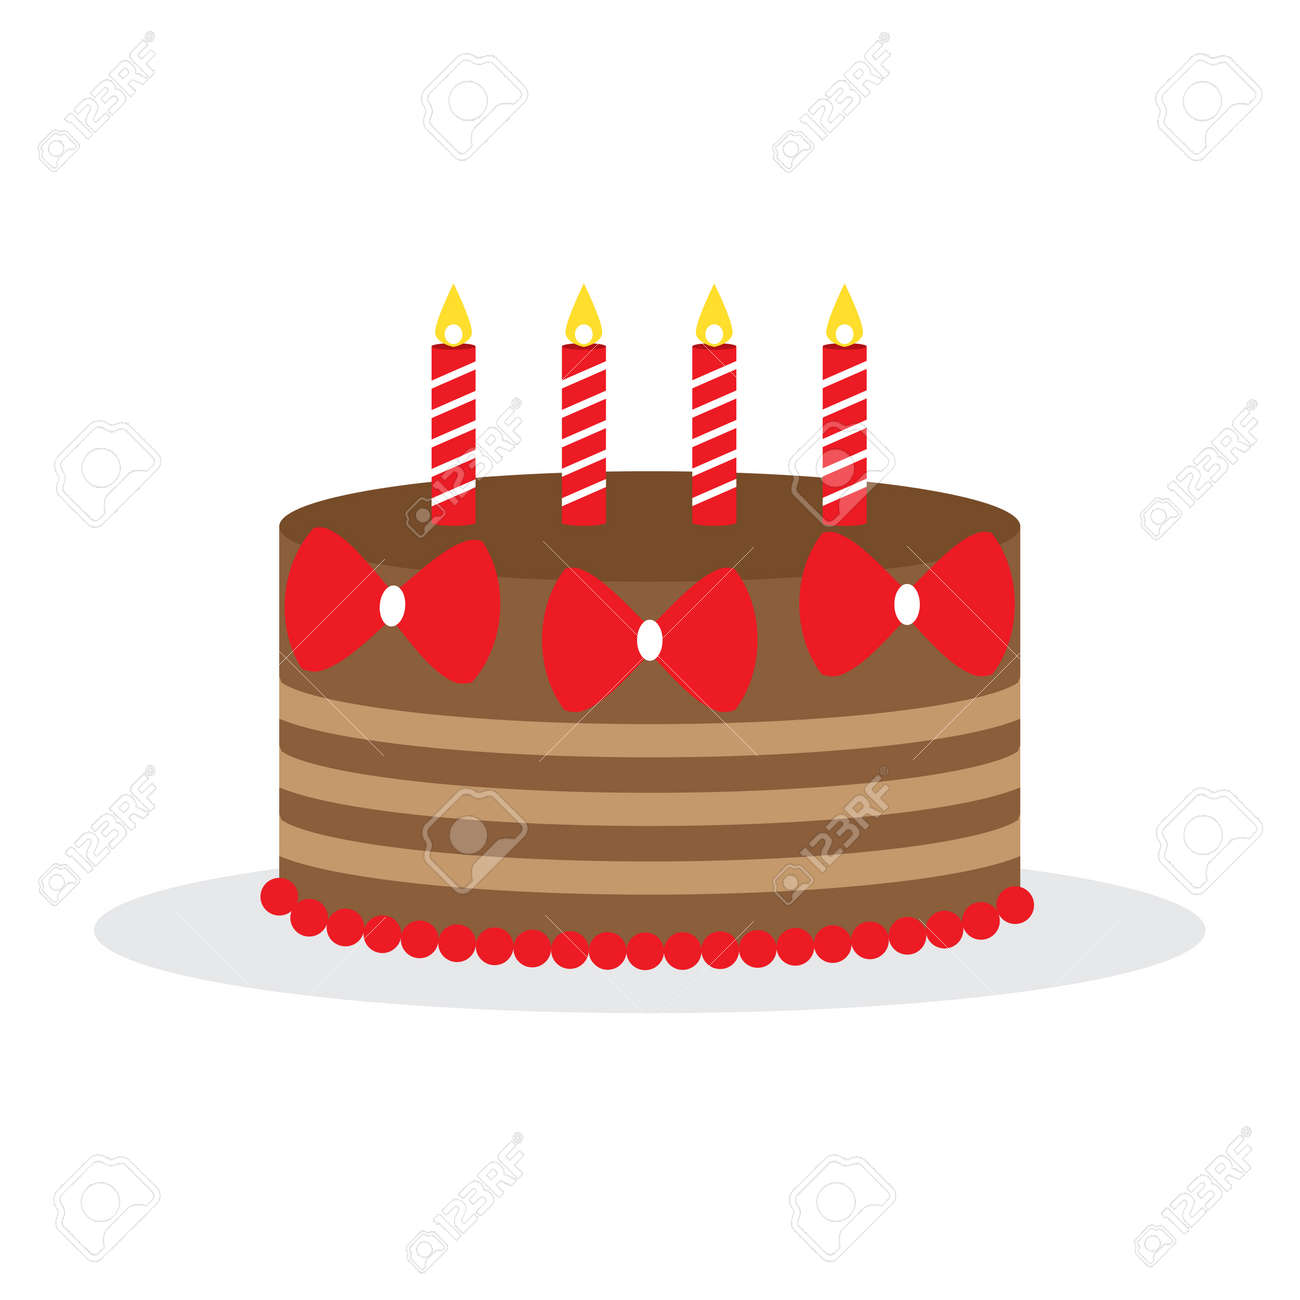 Fantastic Chocolate Cake With Red Ribbon And Candles Vector Illustration Funny Birthday Cards Online Inifofree Goldxyz